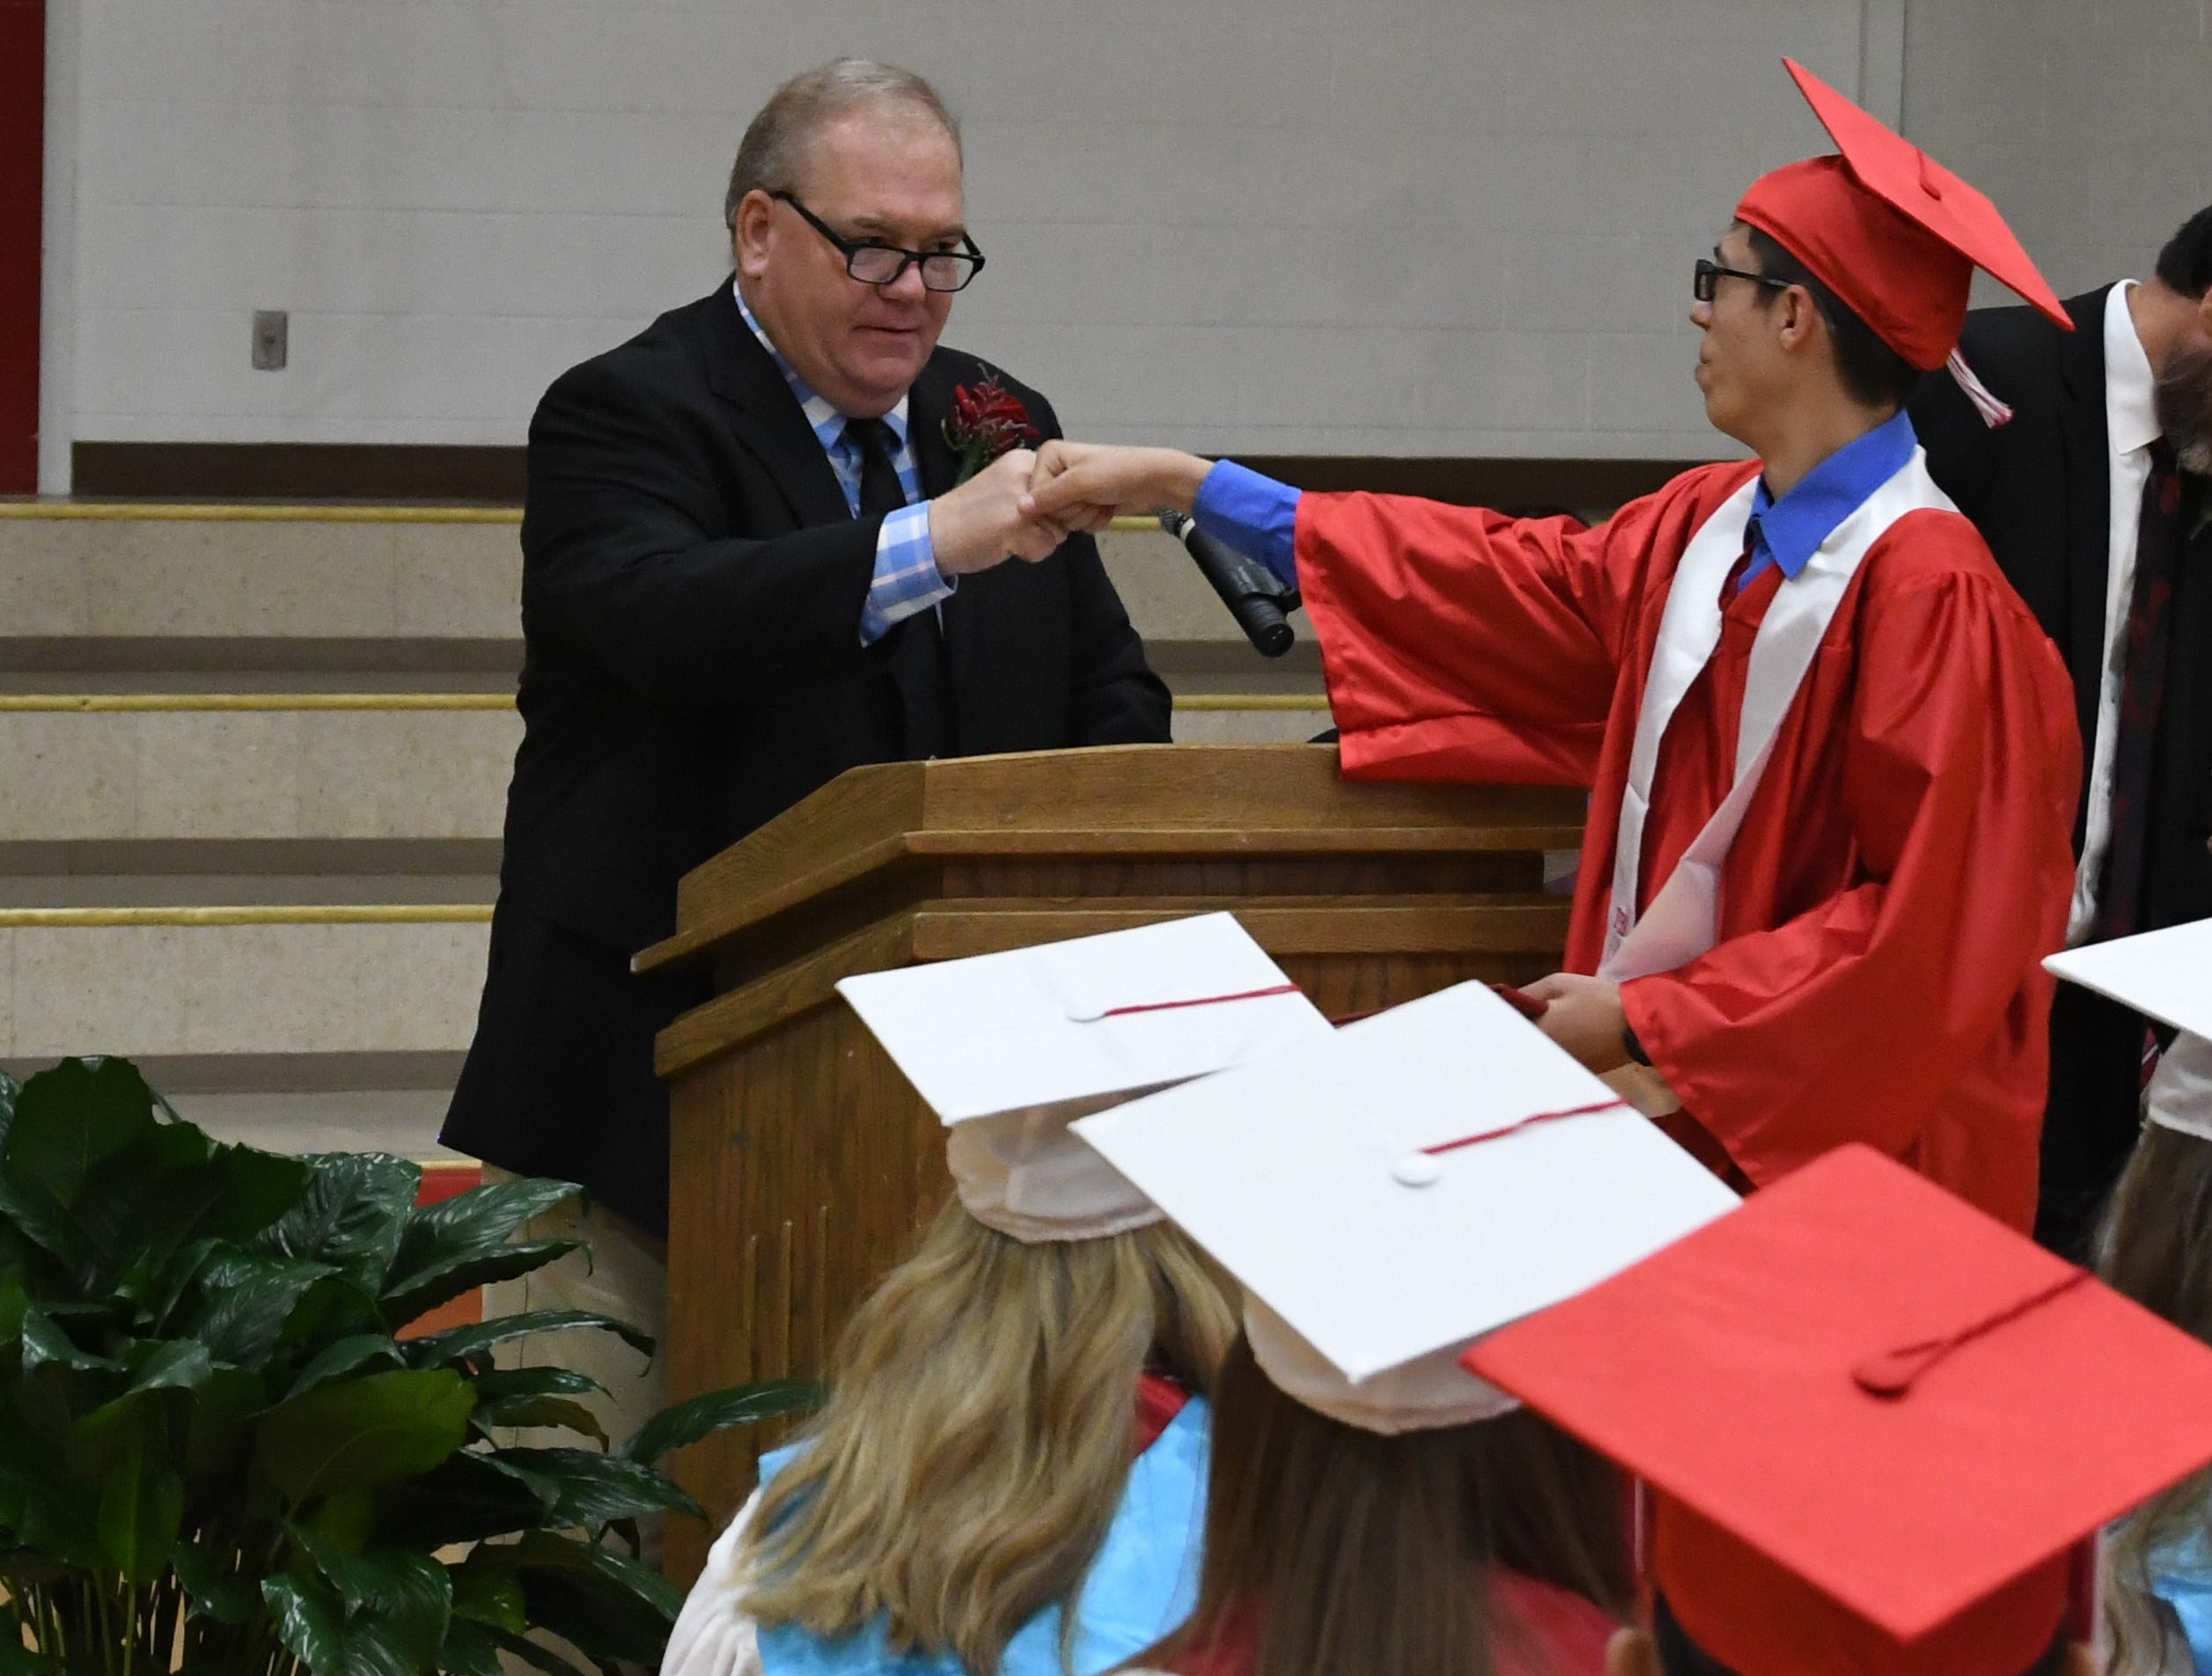 A Flippin graduate bumps fists with high school principal Dale Horn after receiving his diploma on Friday night in Flippin.